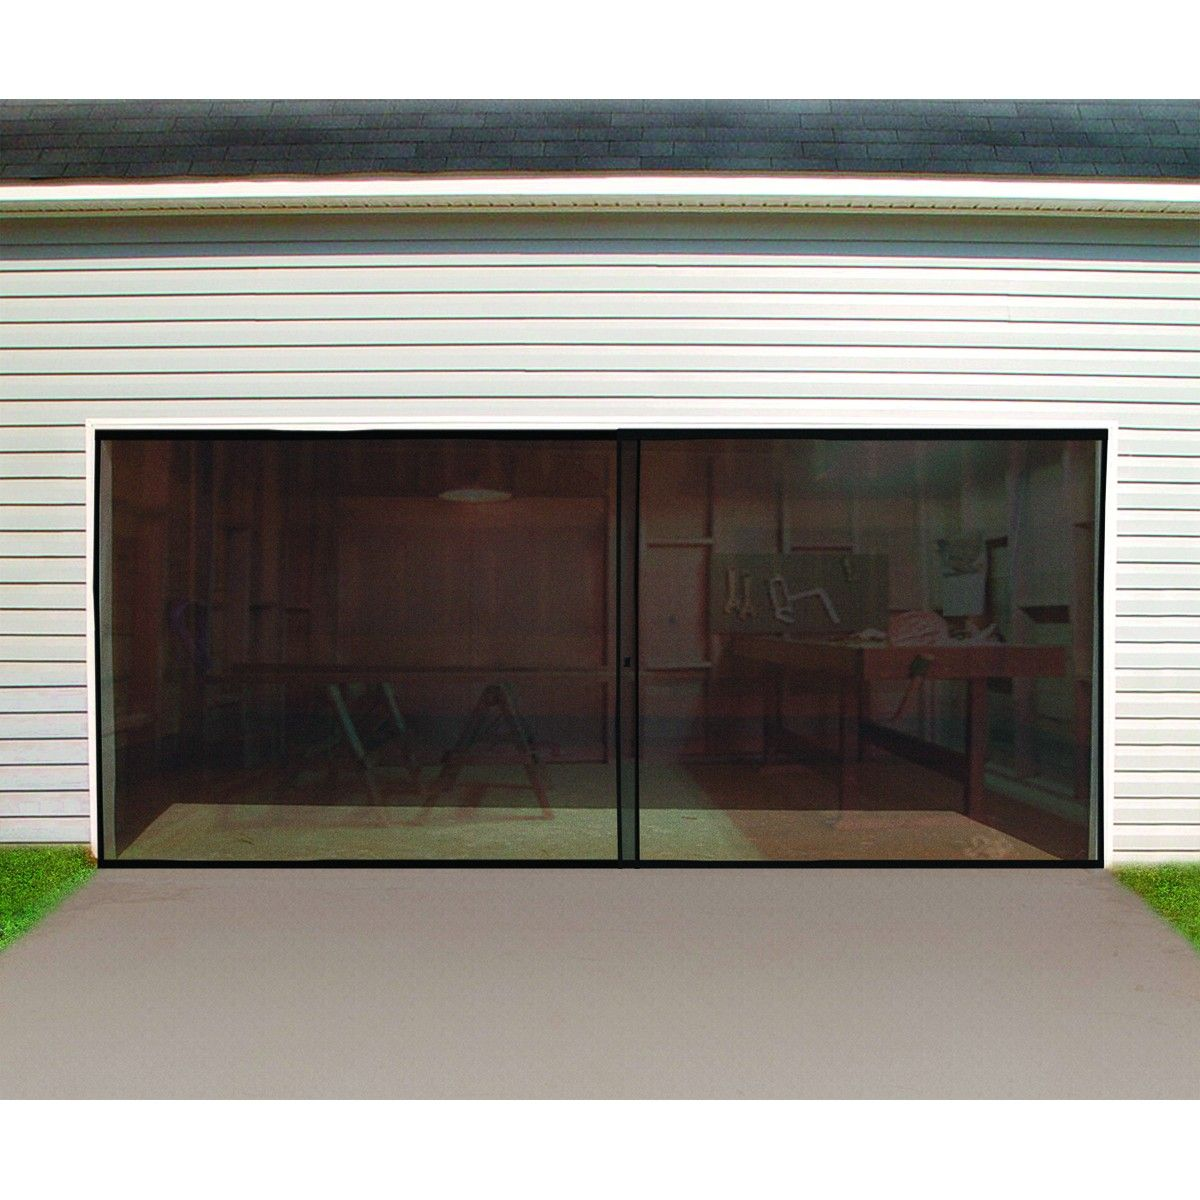 Double Garage Door Screen Garage Decor Garage Screen Door Double Garage Door